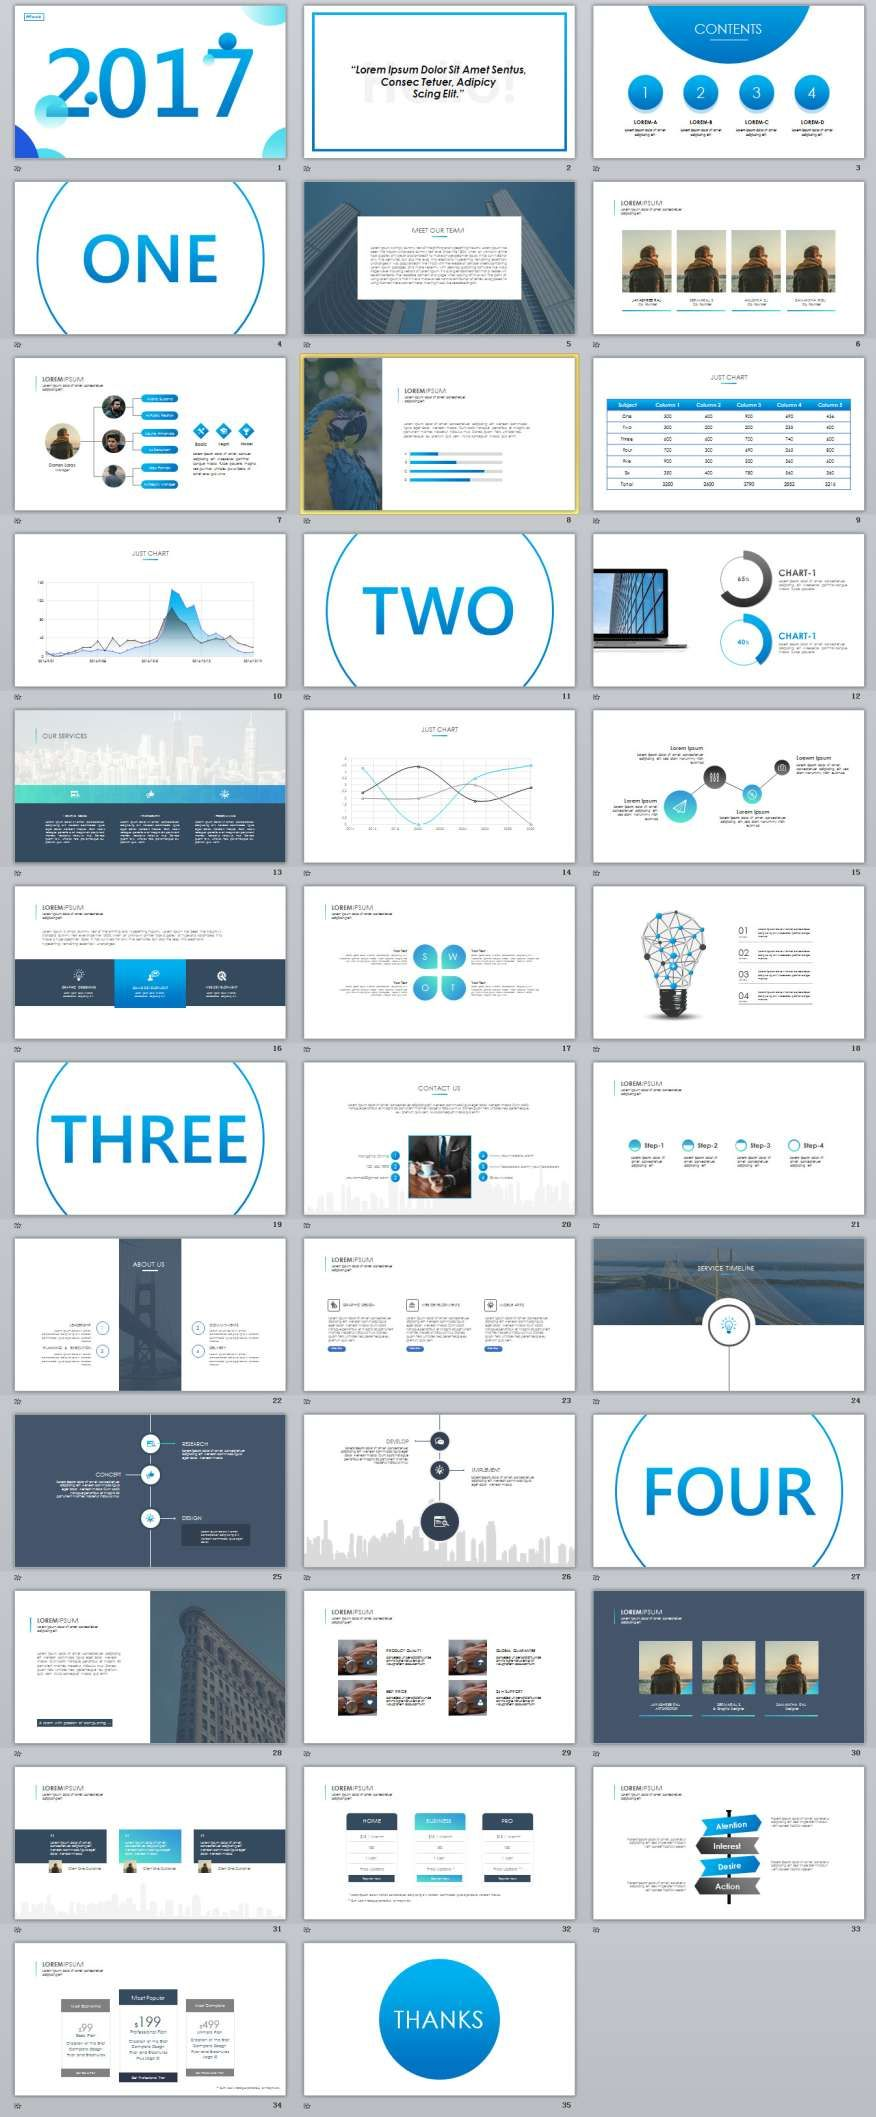 35 Slide Best Blue Business PowerPoint TemplatesThe highest quality PowerPoint Templates and Keynote Templates download